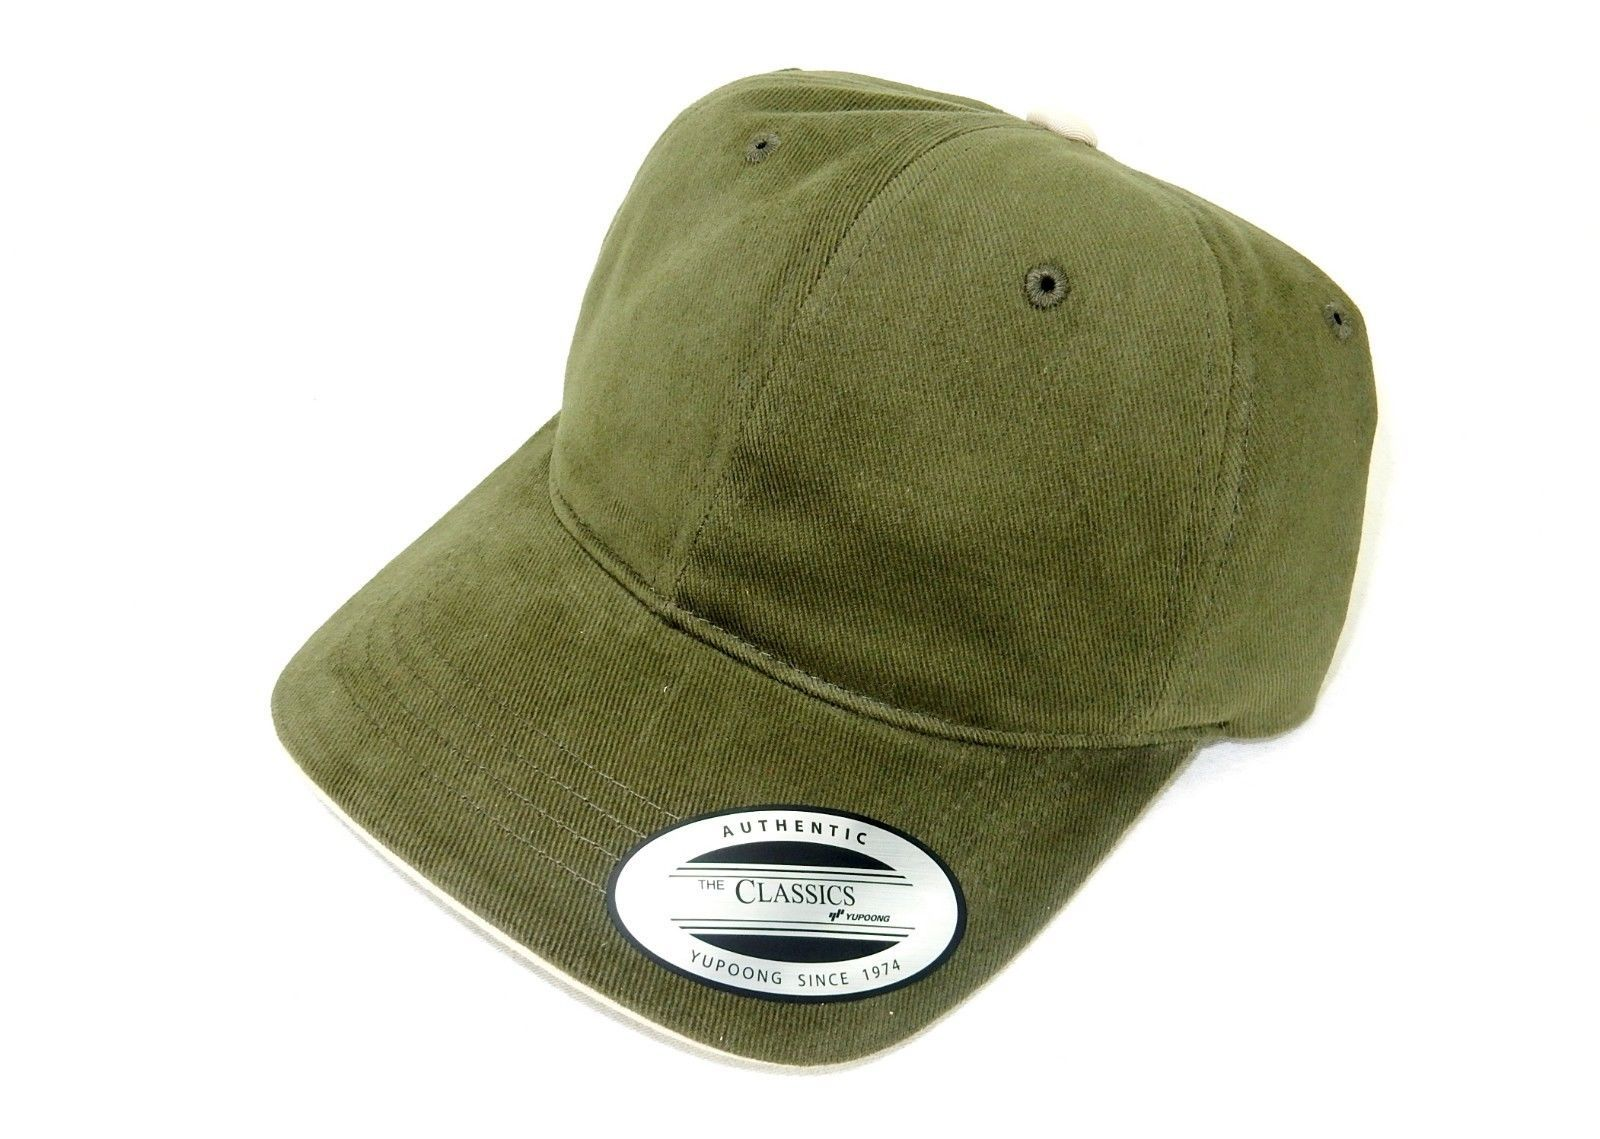 Baseball Cap, 6-Panel FlexFit w/Adjustable Headband, Cotton, Stone/Olive, #6161